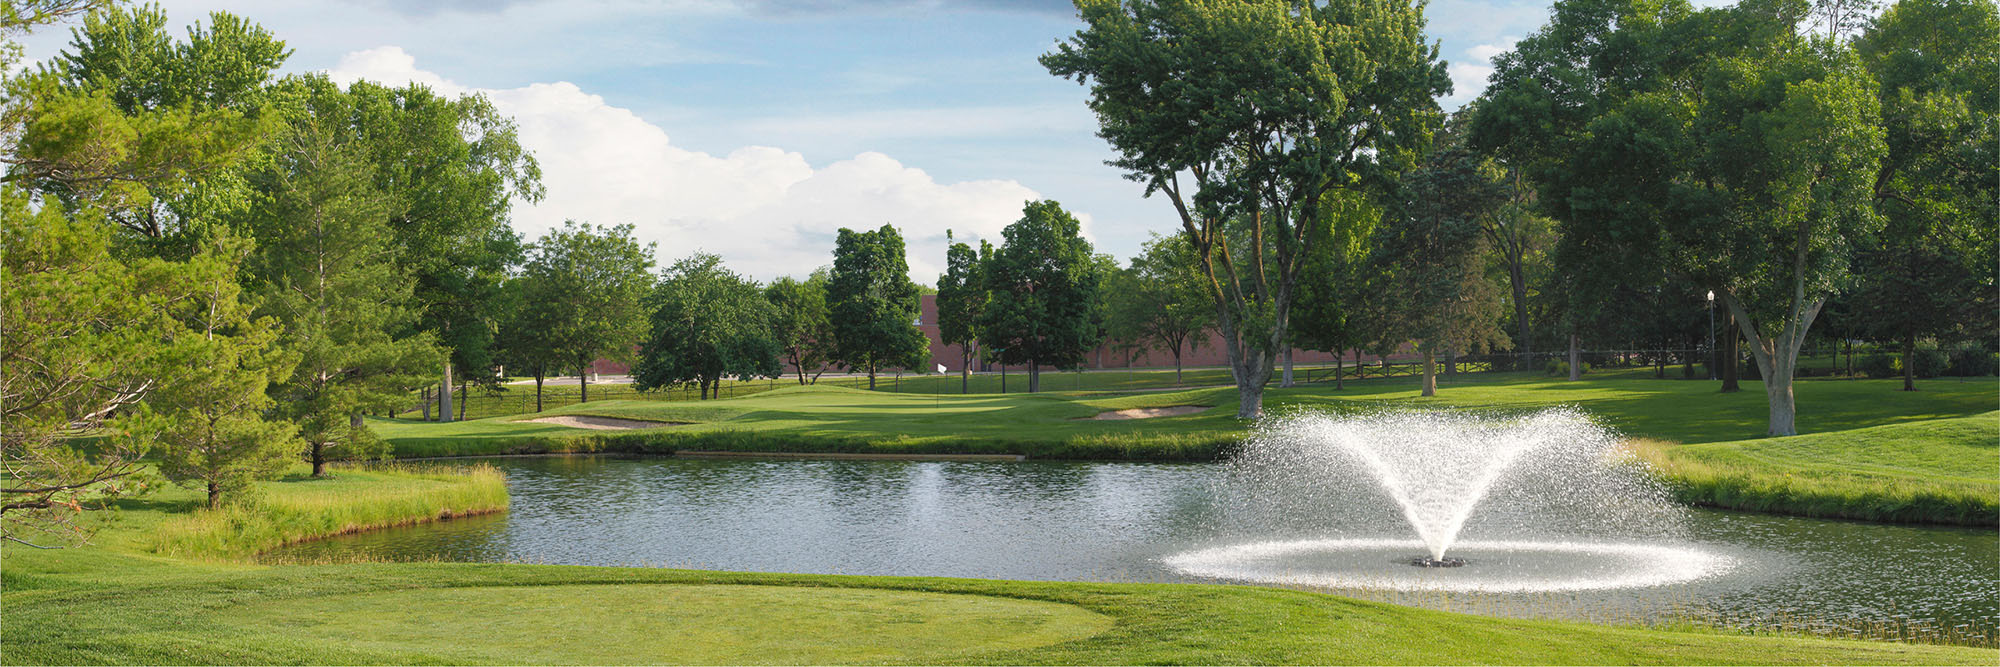 Golf Course Image - Country Club of Lincoln No. 14